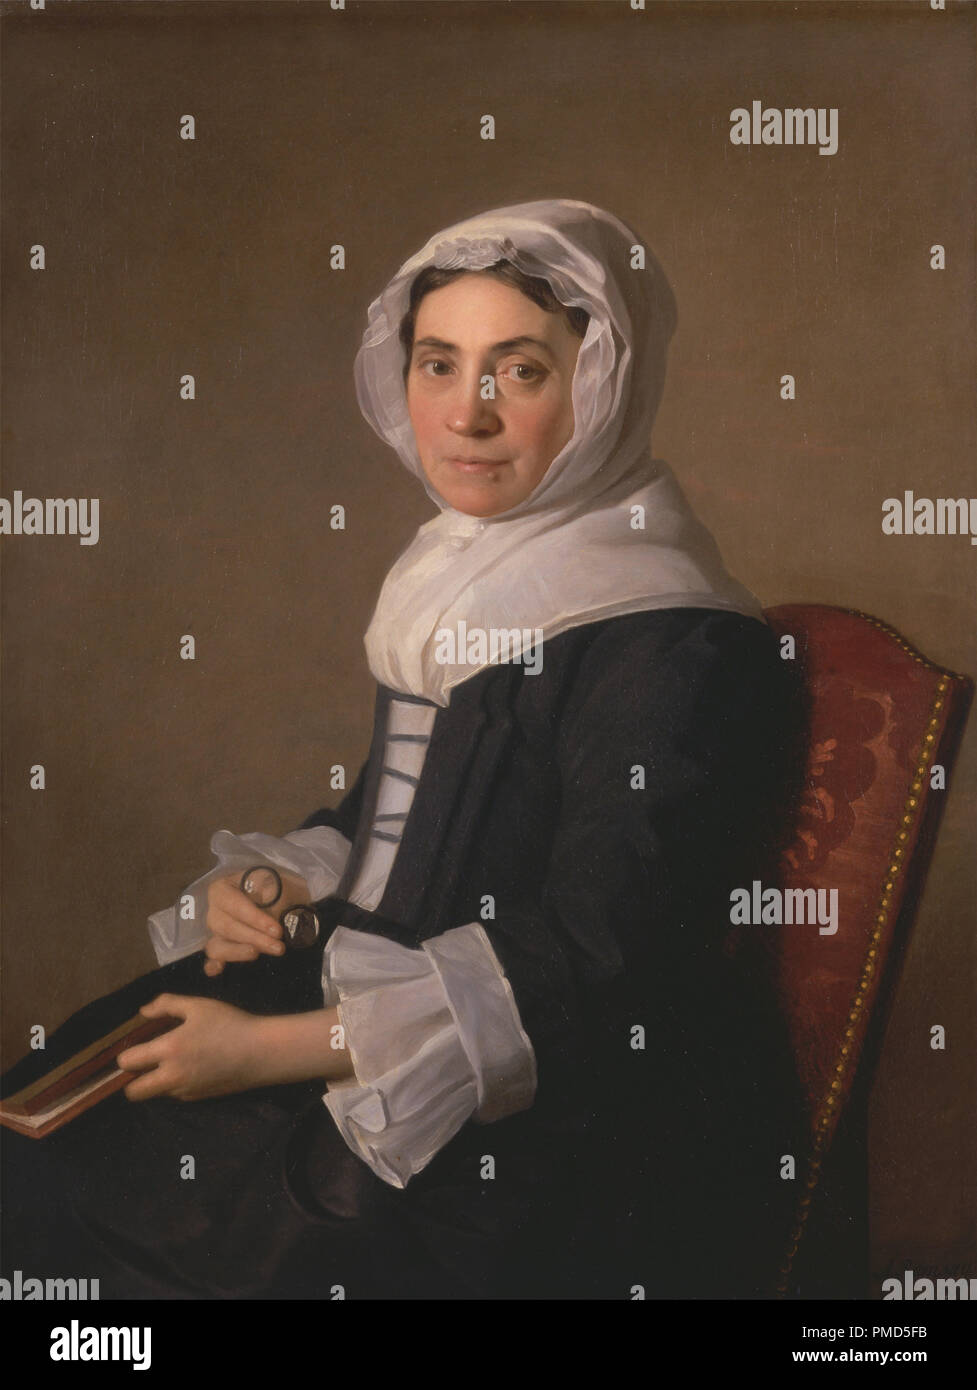 Mary Adam. Date/Period: 1754. Painting. Oil on canvas. Height: 940 mm (37 in); Width: 711 mm (27.99 in). Author: Allan Ramsay. - Stock Image